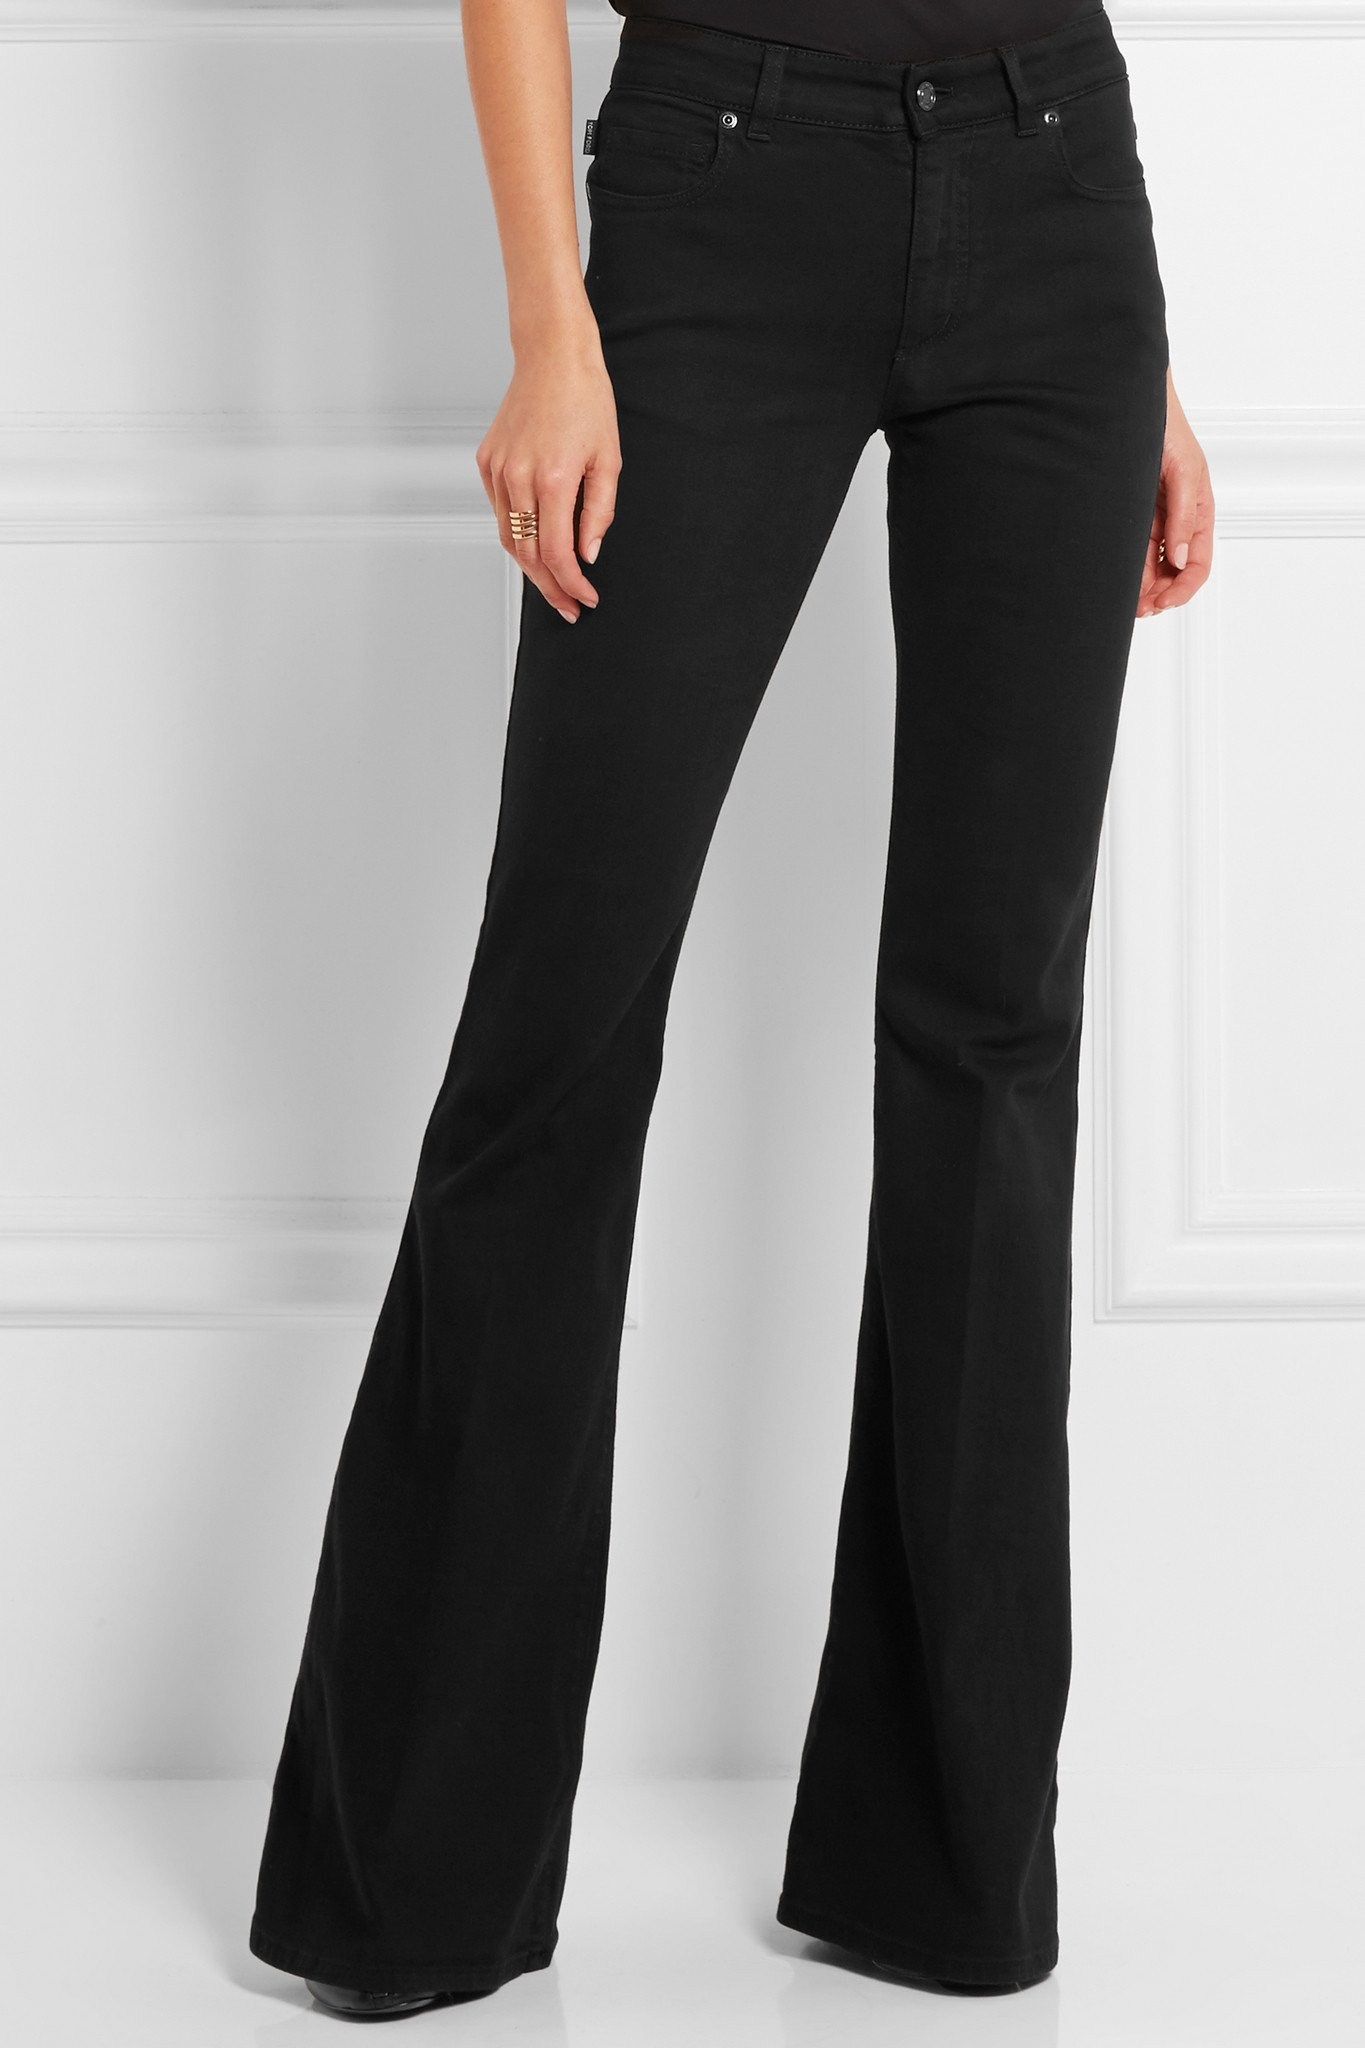 Flared jeans Tom Ford Exclusive Sale Online Buy Cheap Huge Surprise Choice dbEFvD